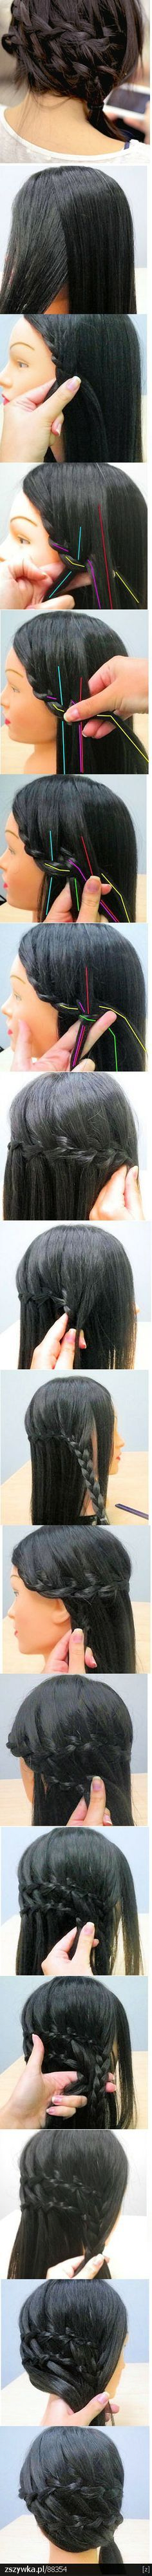 Double Waterfall Braid step by step